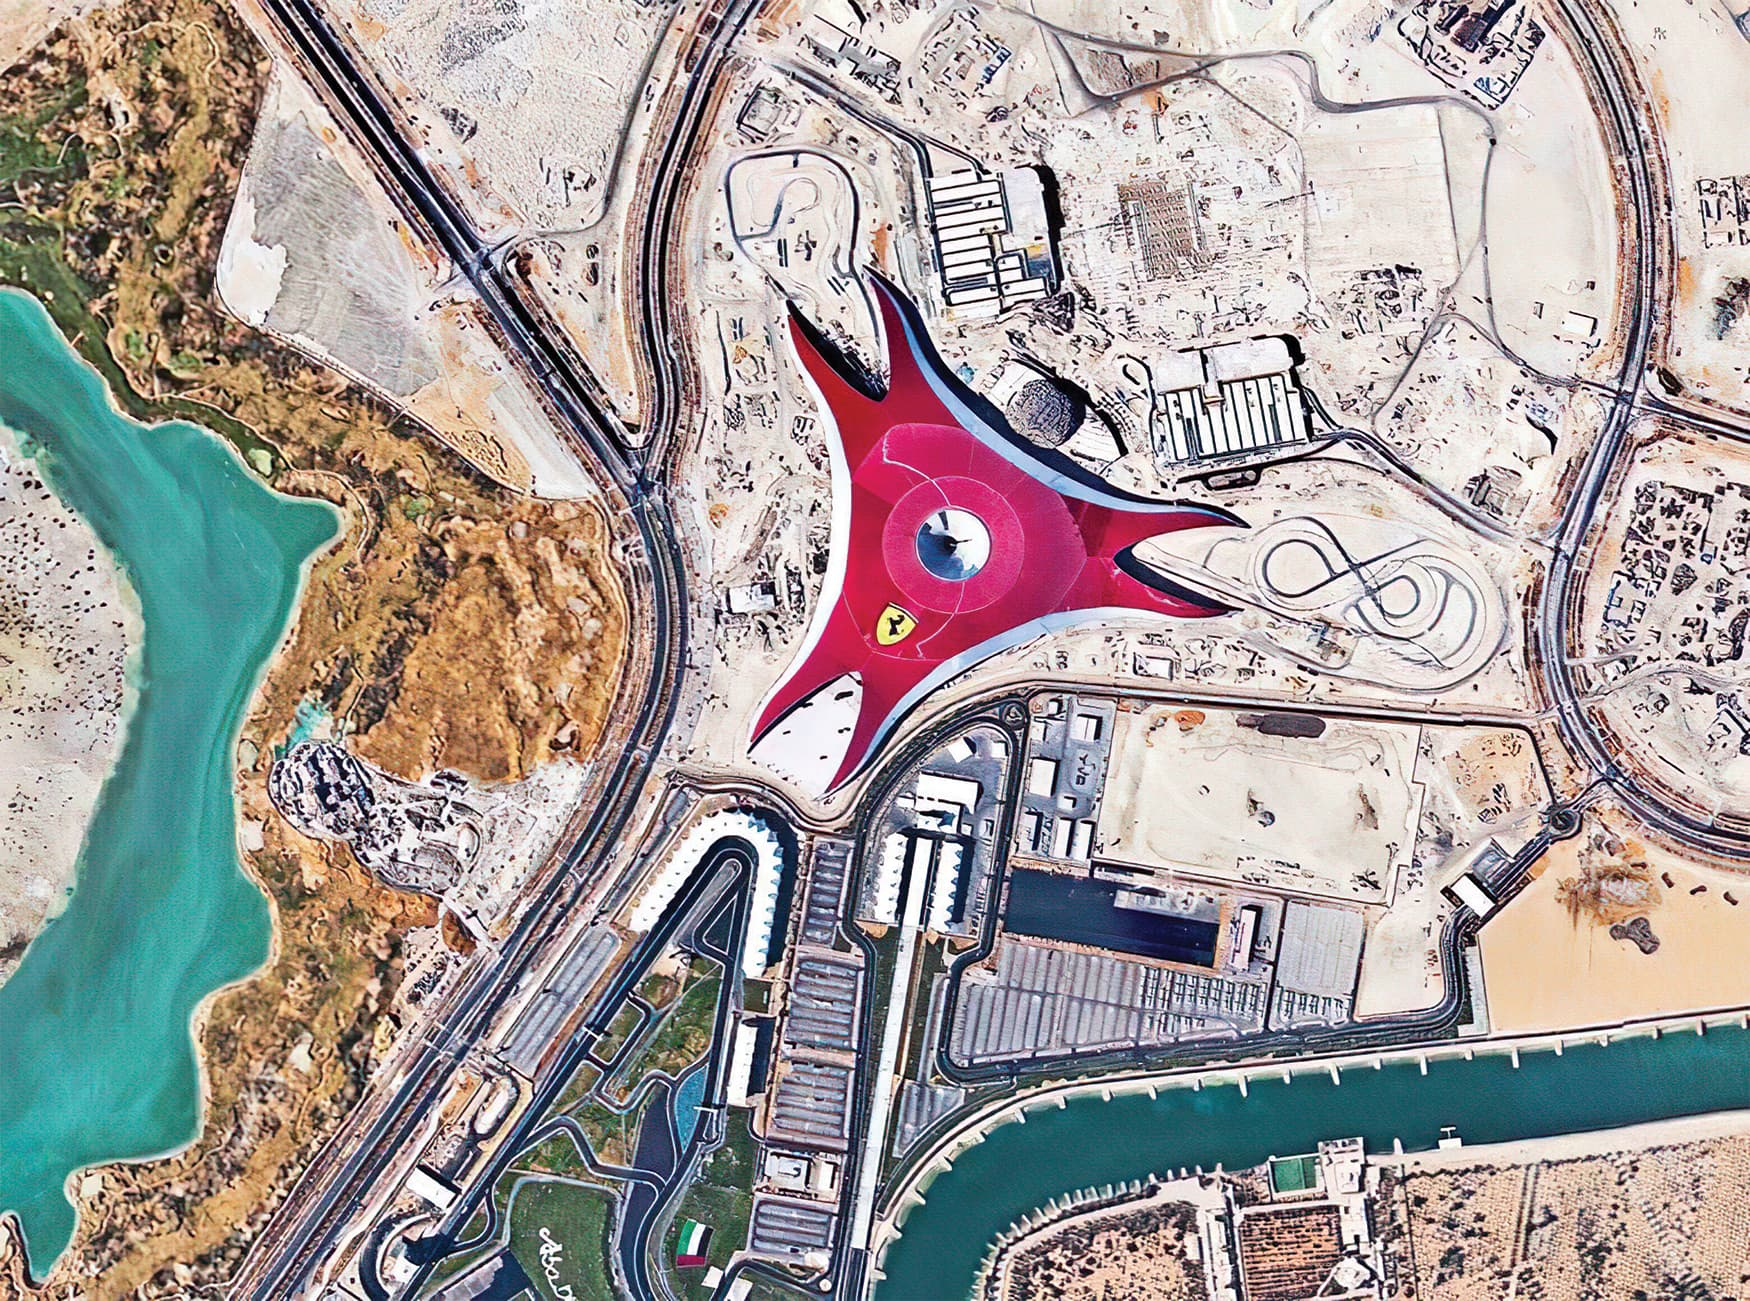 Ferrari World in Abu Dhabi in the United Arab Emirates. Aerial View of the Largest Indoor Theme Park.